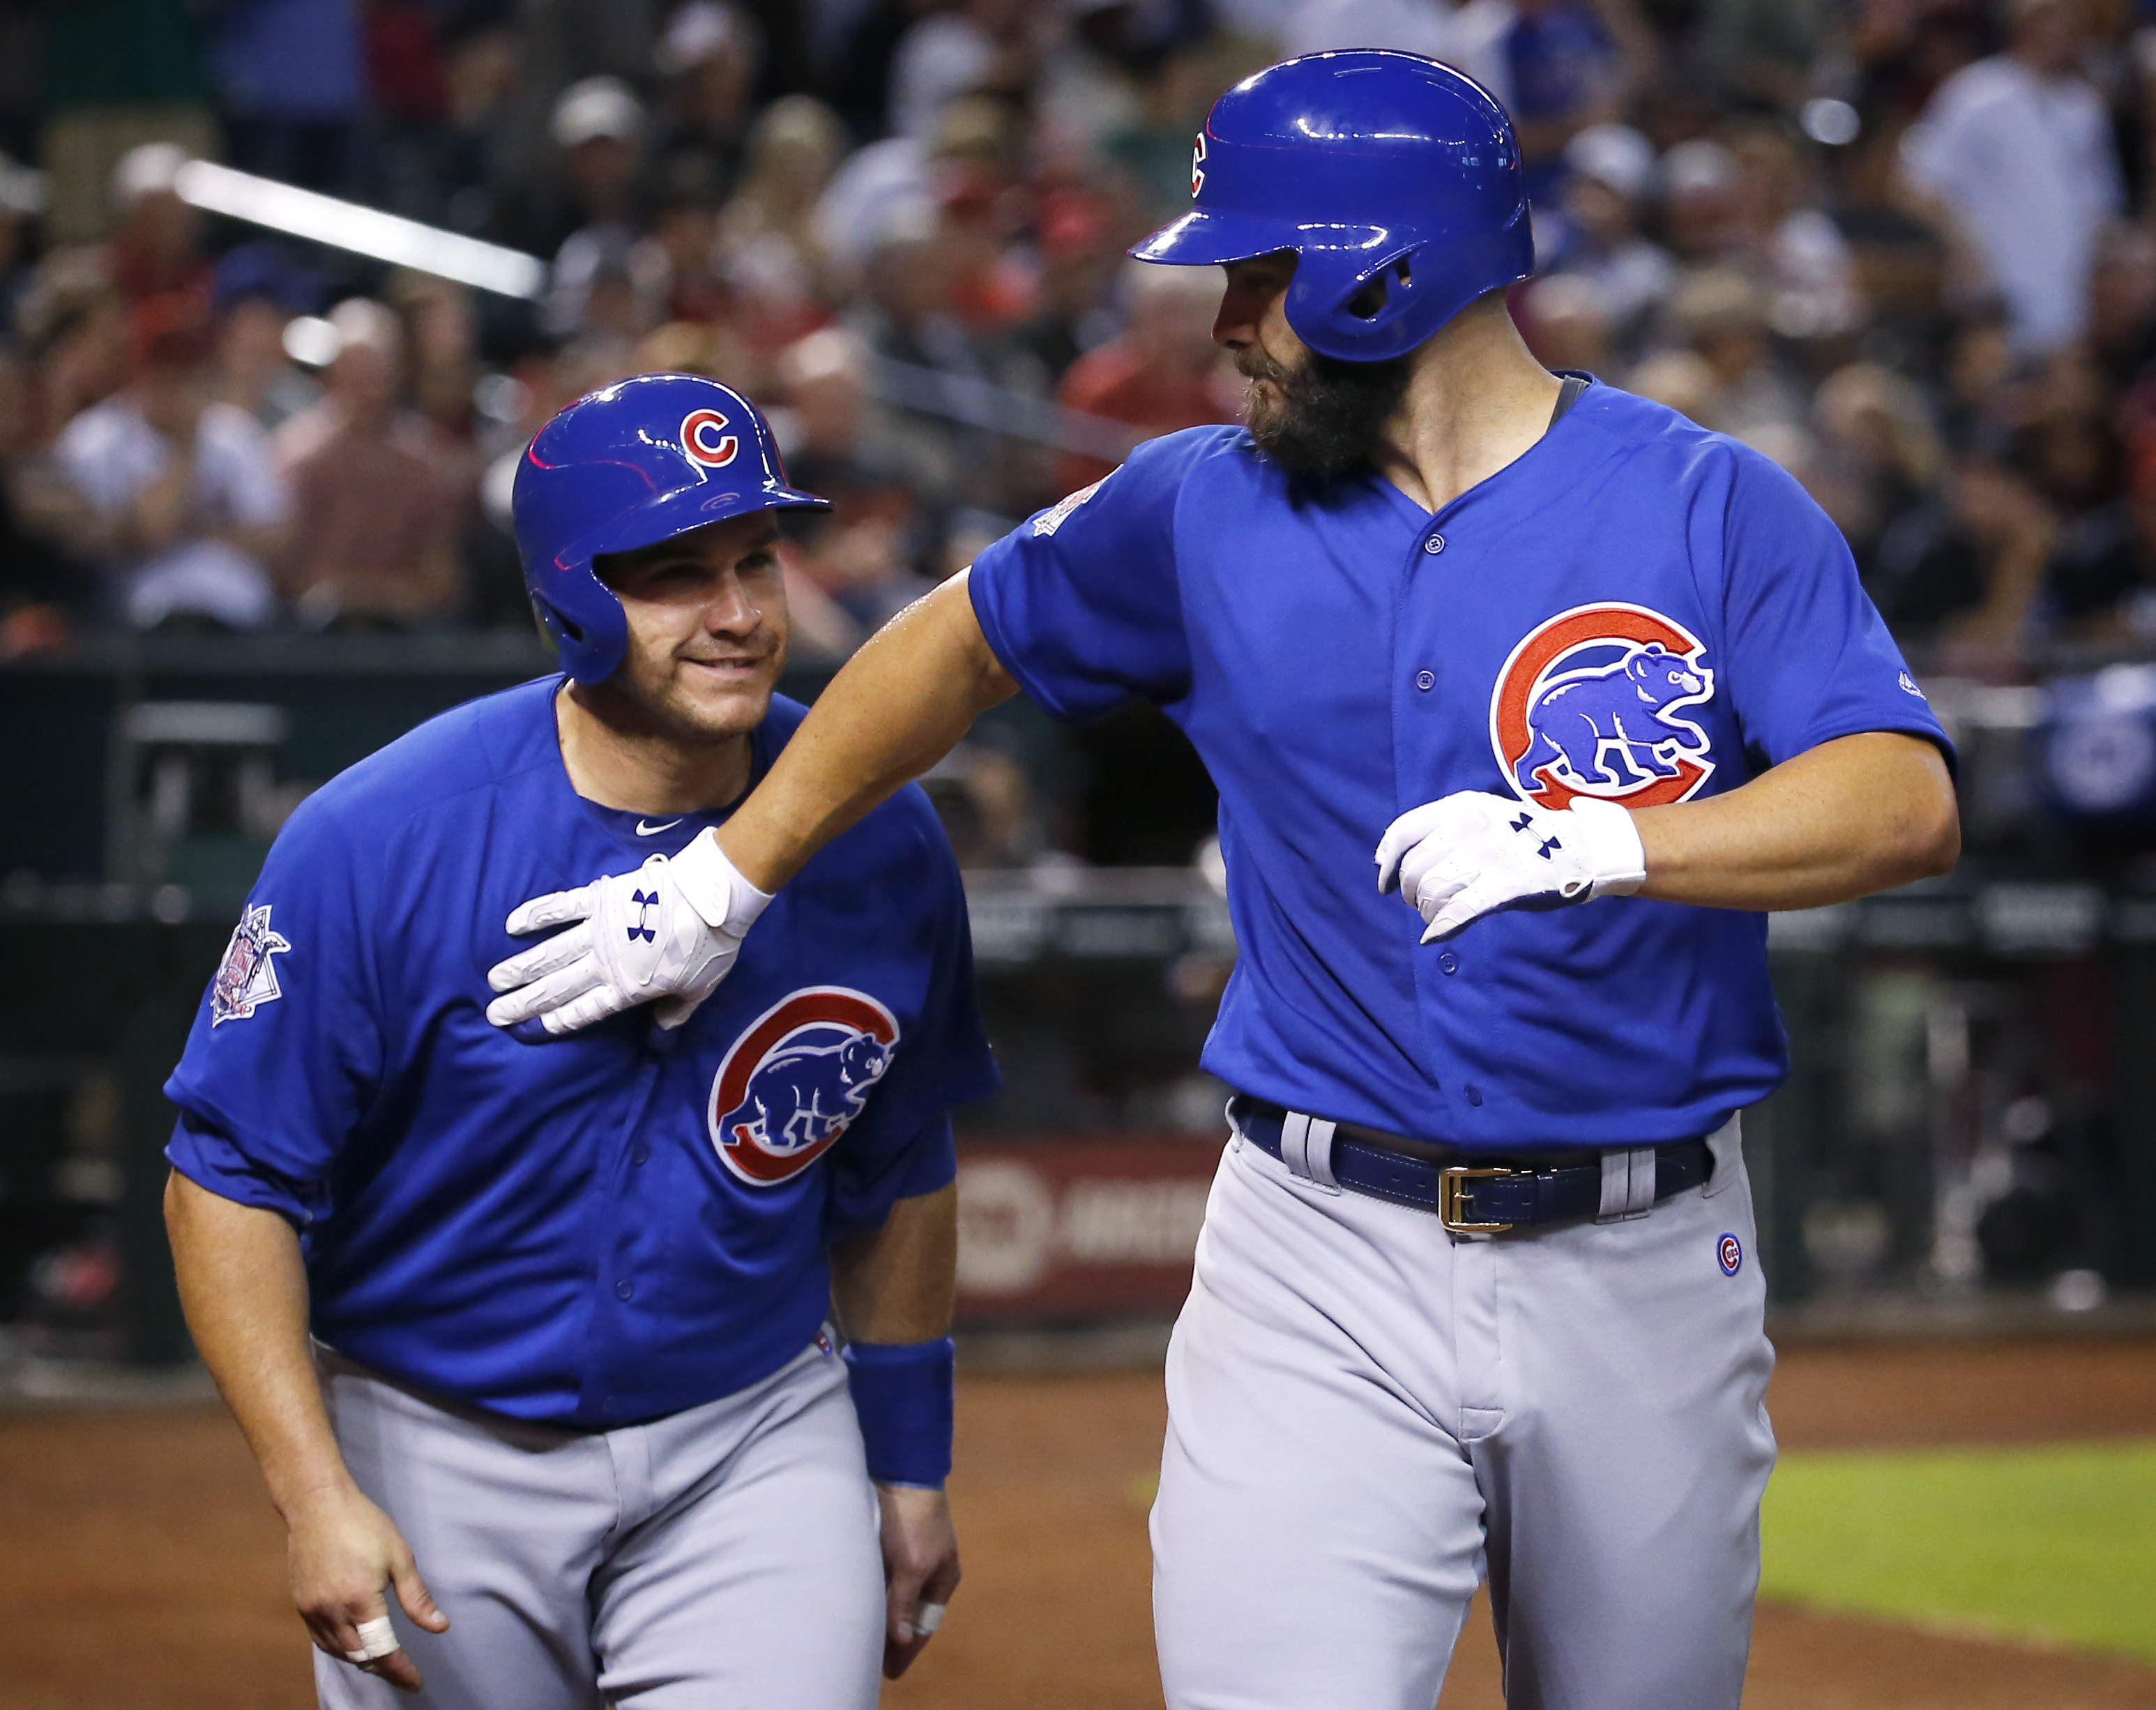 Chicago Cubs Jake Arrieta, right, greets teammate Miguel Montero at the plate after hitting a two-run home run against the Arizona Diamondbacks during the second inning of a baseball game, Sunday, April 10, 2016, in Phoenix. (AP Photo/Matt York)